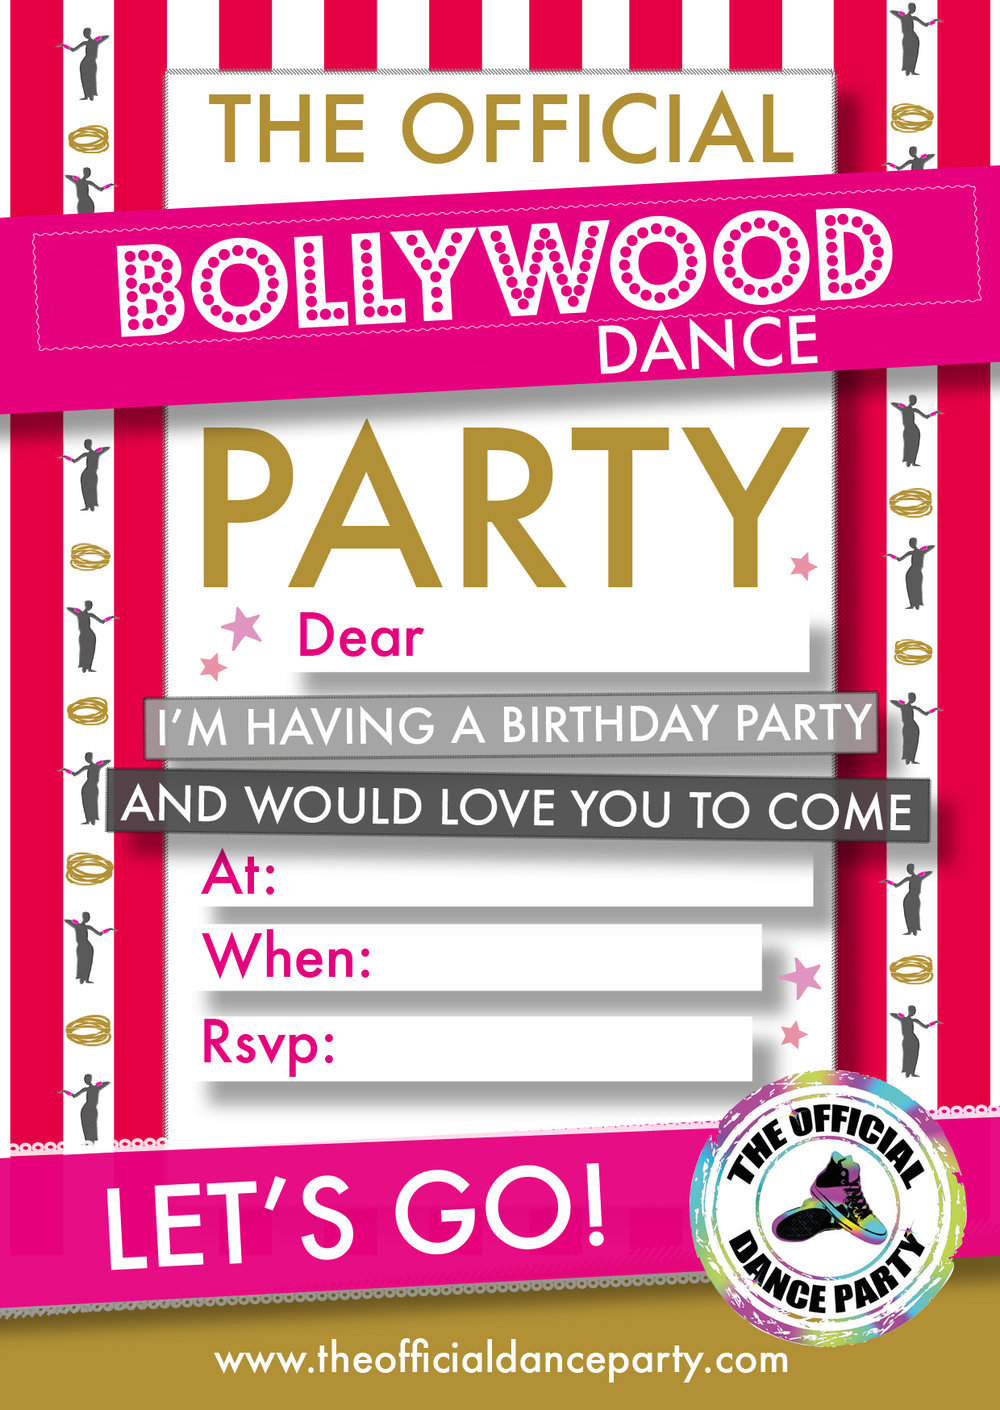 Bollywood — The Official Dance Party